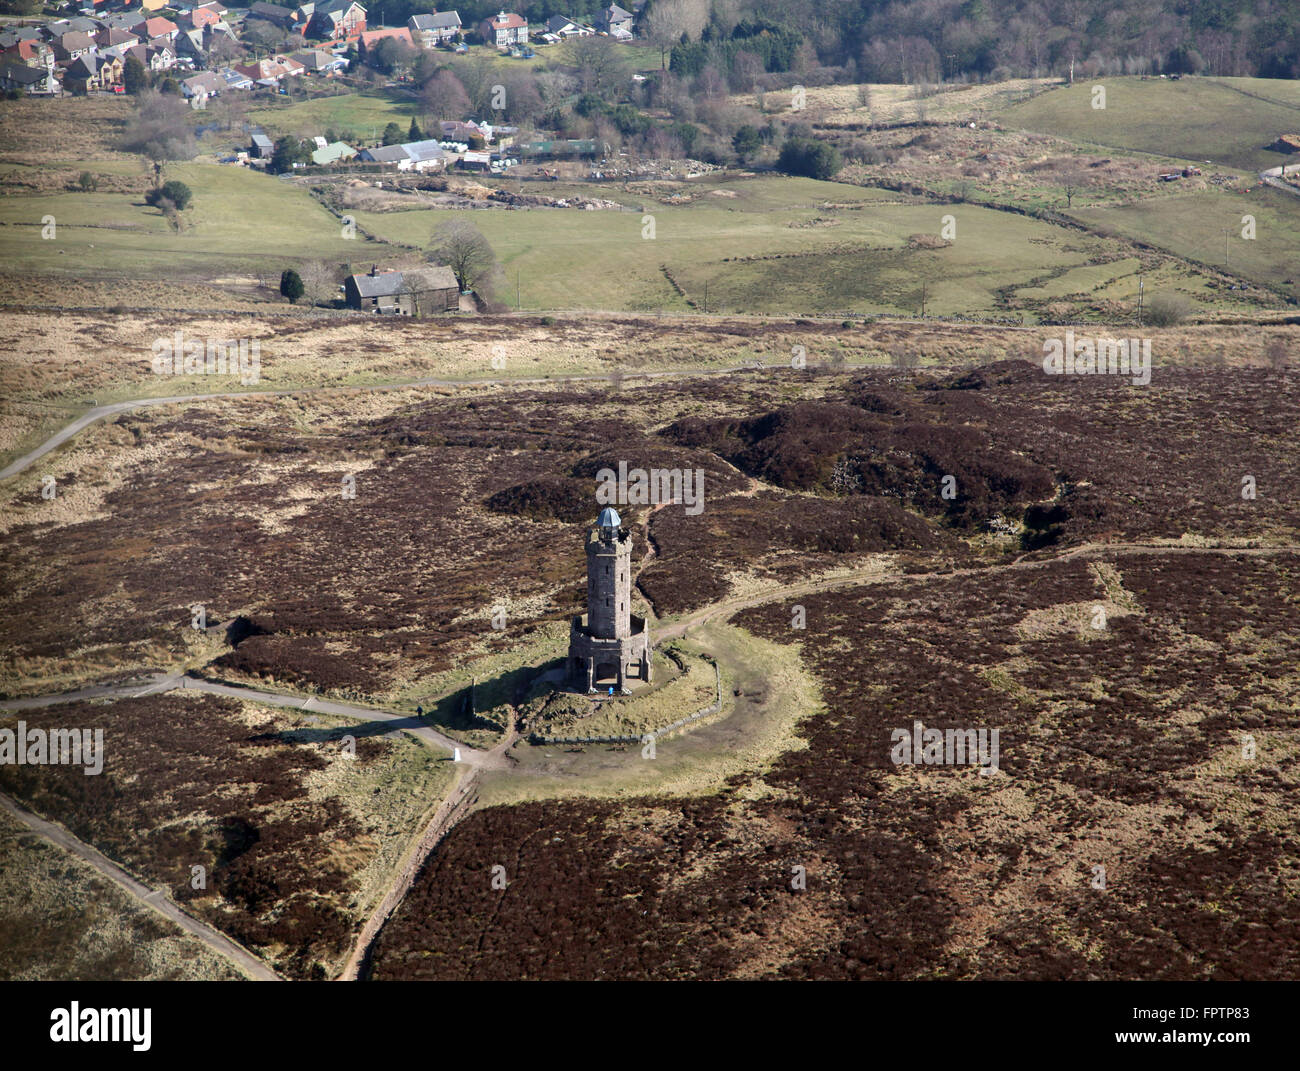 aerial view of the Darwen Tower on Beacon Hill in Lancashire, UK - Stock Image